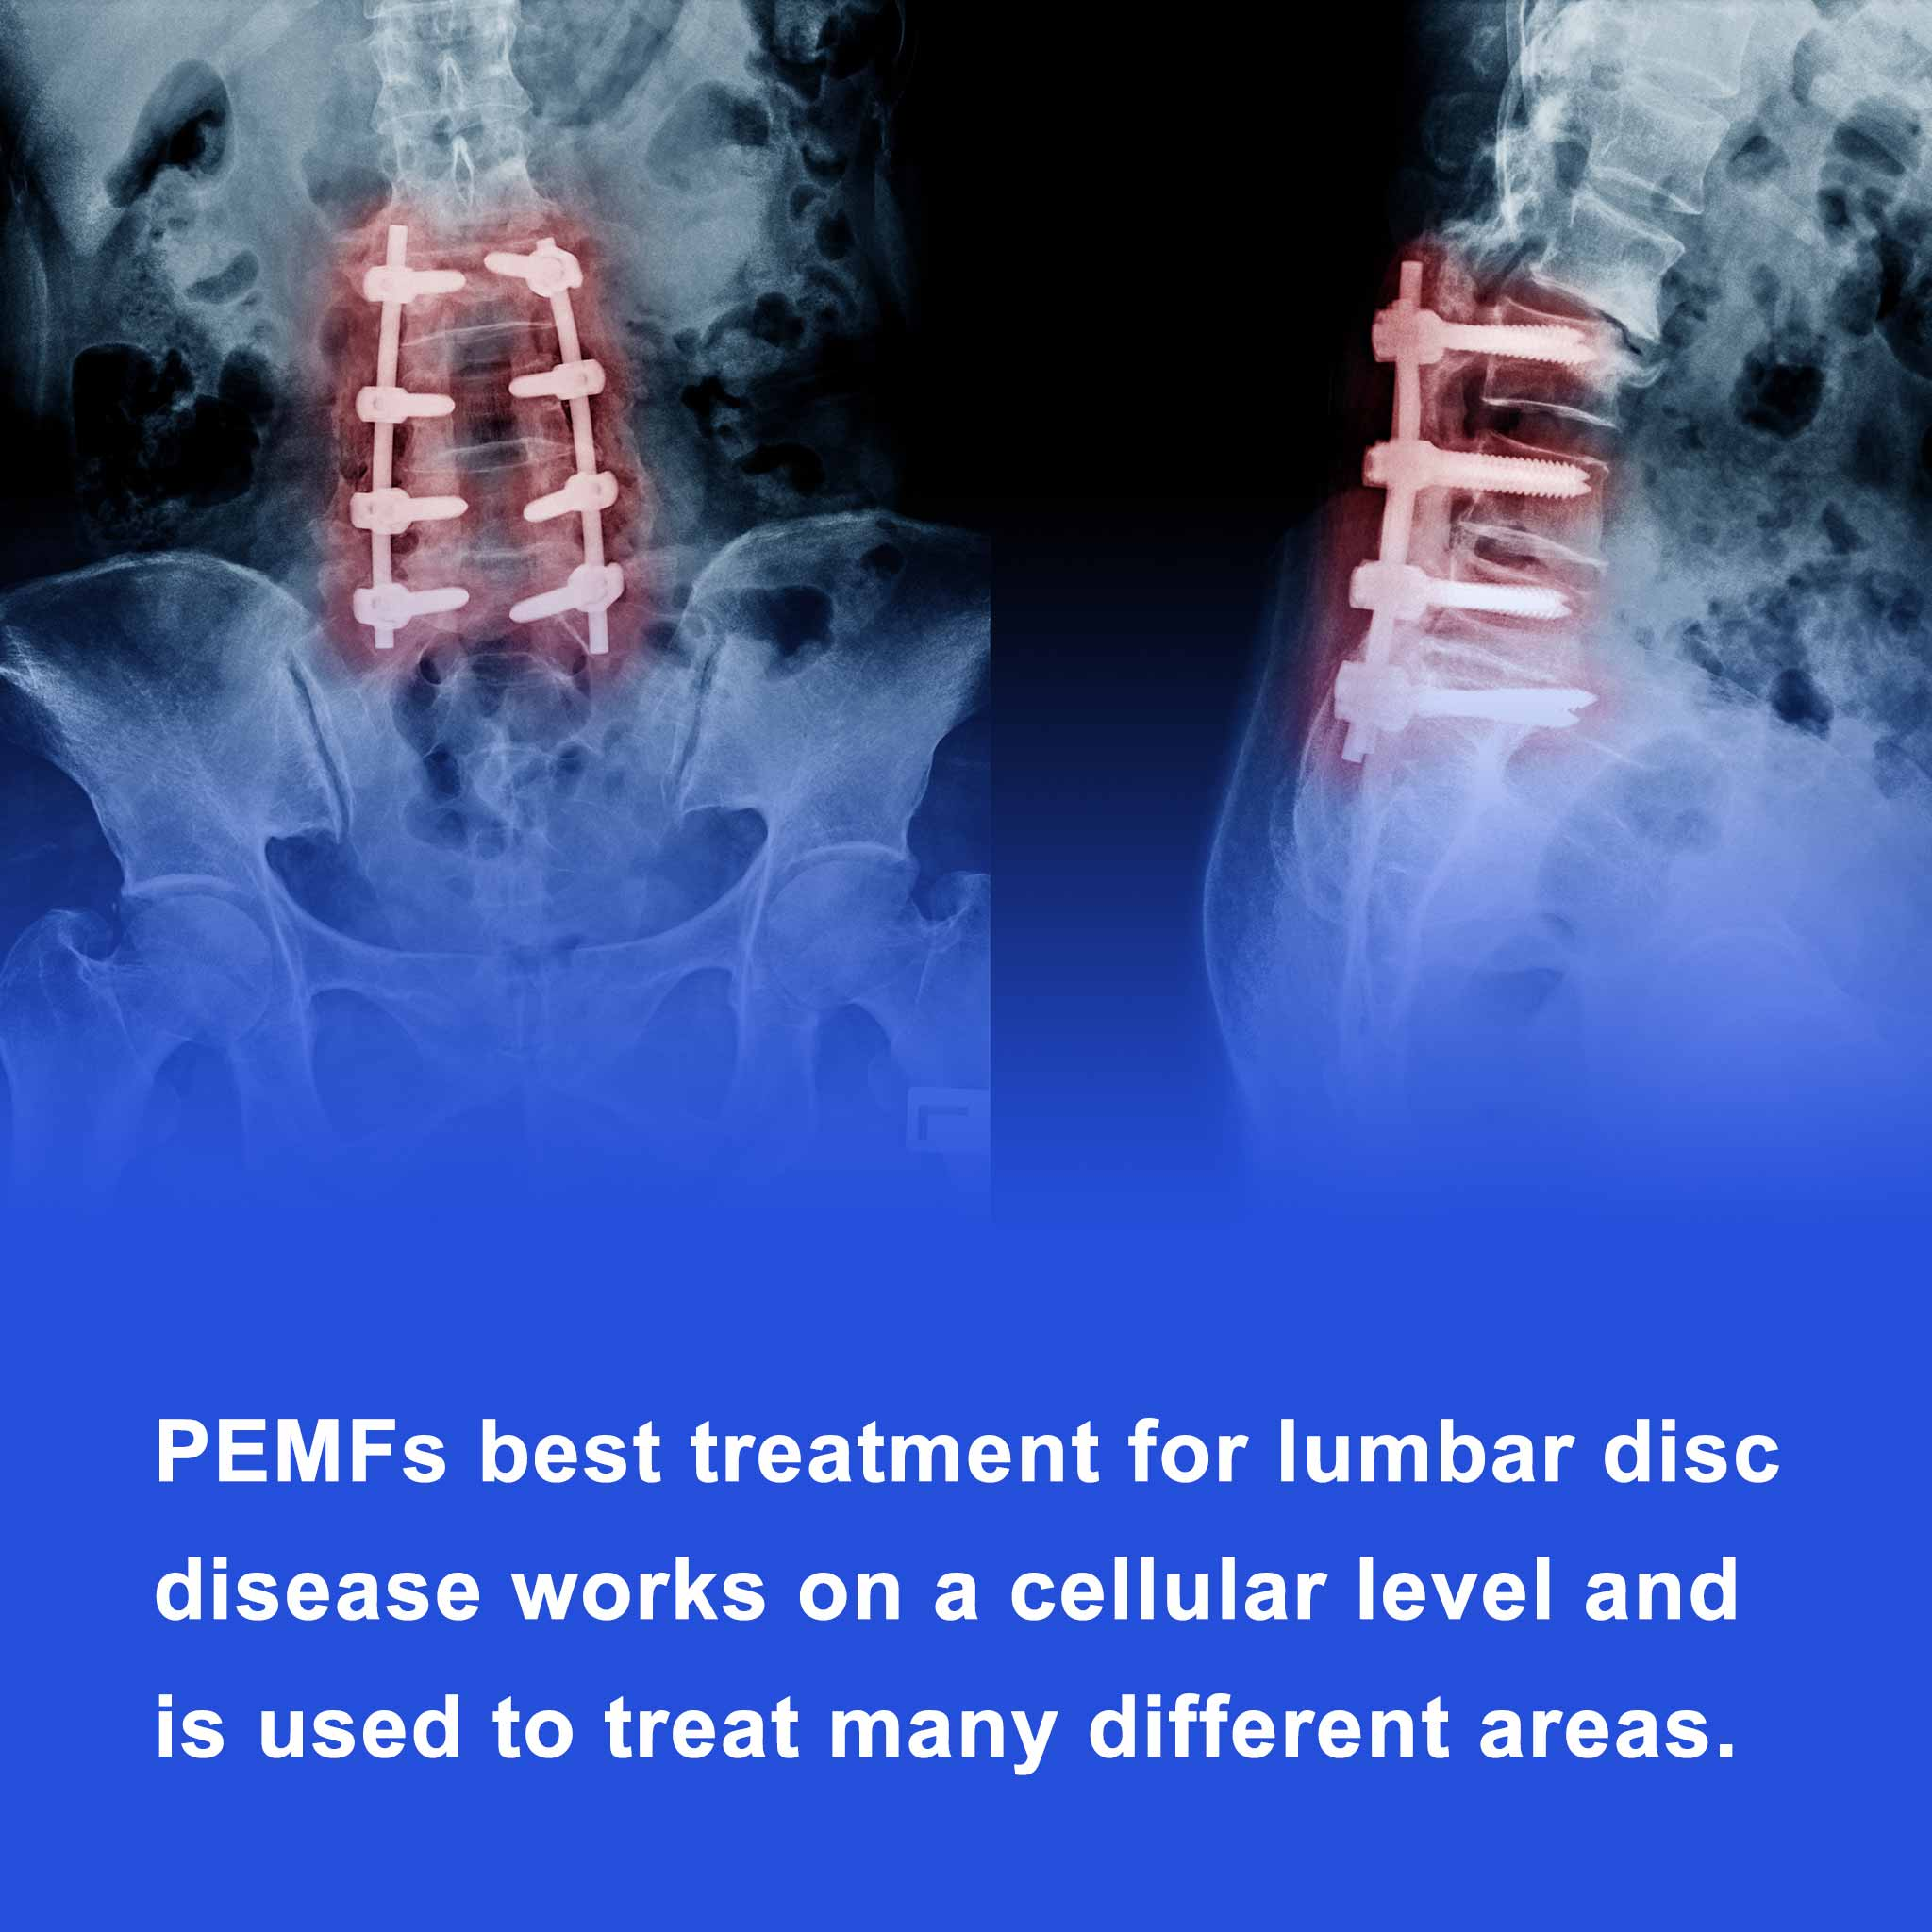 PEMFs best treatment for lumbar disc disease works on a cellular level and is used to treat many different areas.